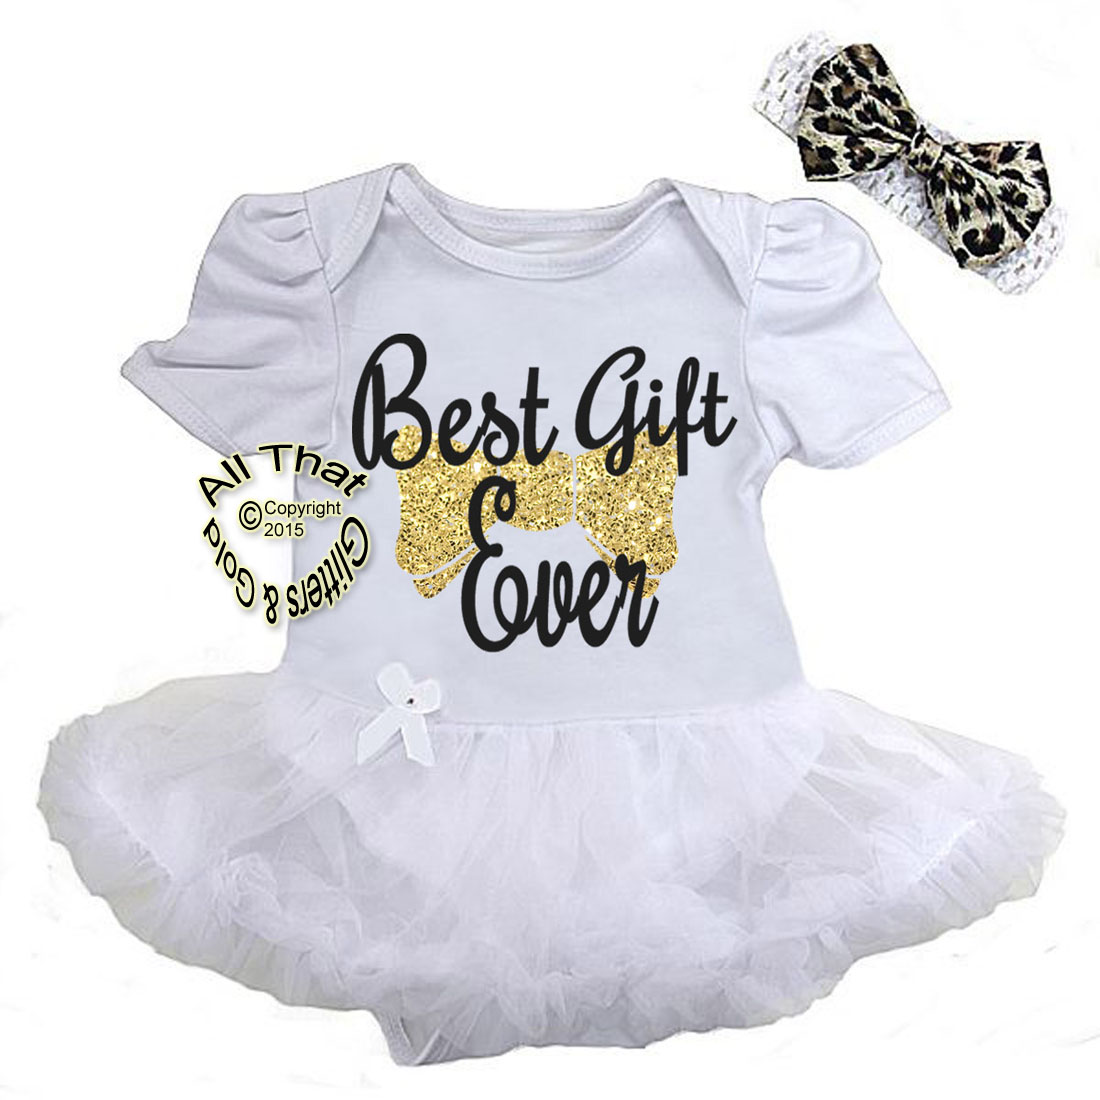 Cute 2 Piece Black and Gold Glitter Best Gift Ever Christmas Outfit For Baby Girls